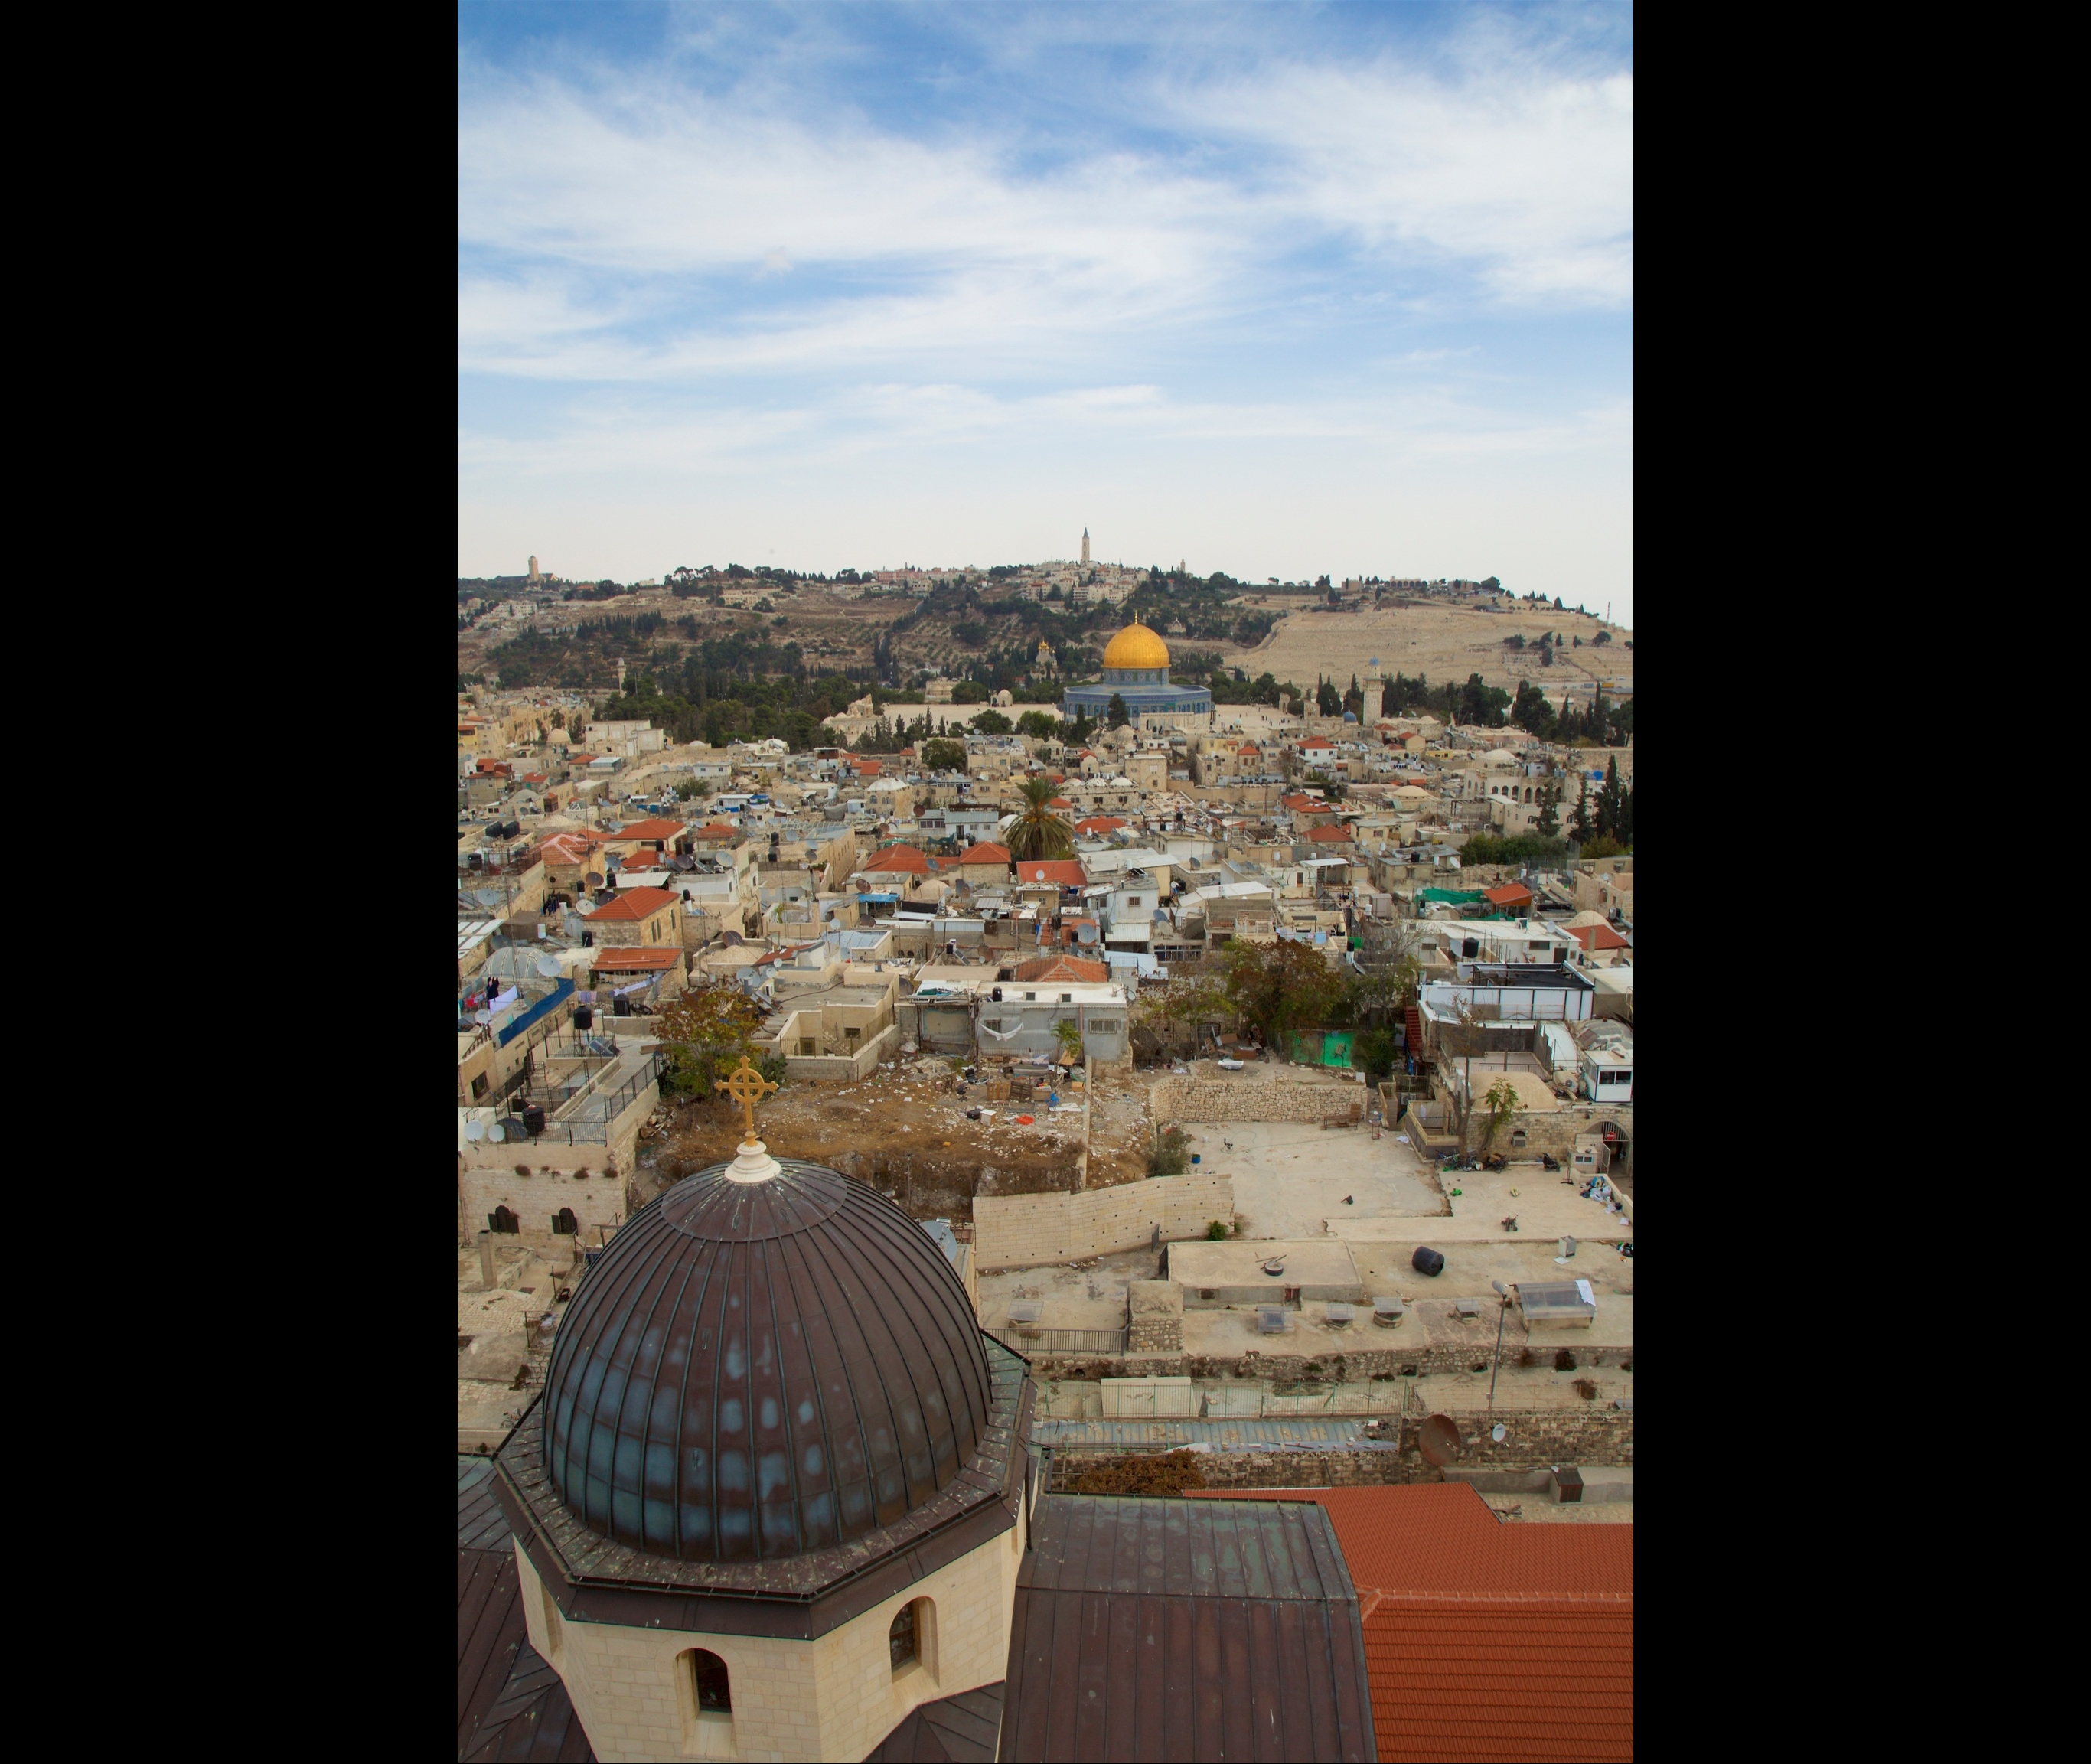 From the tower (180 steps up!) of Redeemer Lutheran Church, Bethlehem 56774